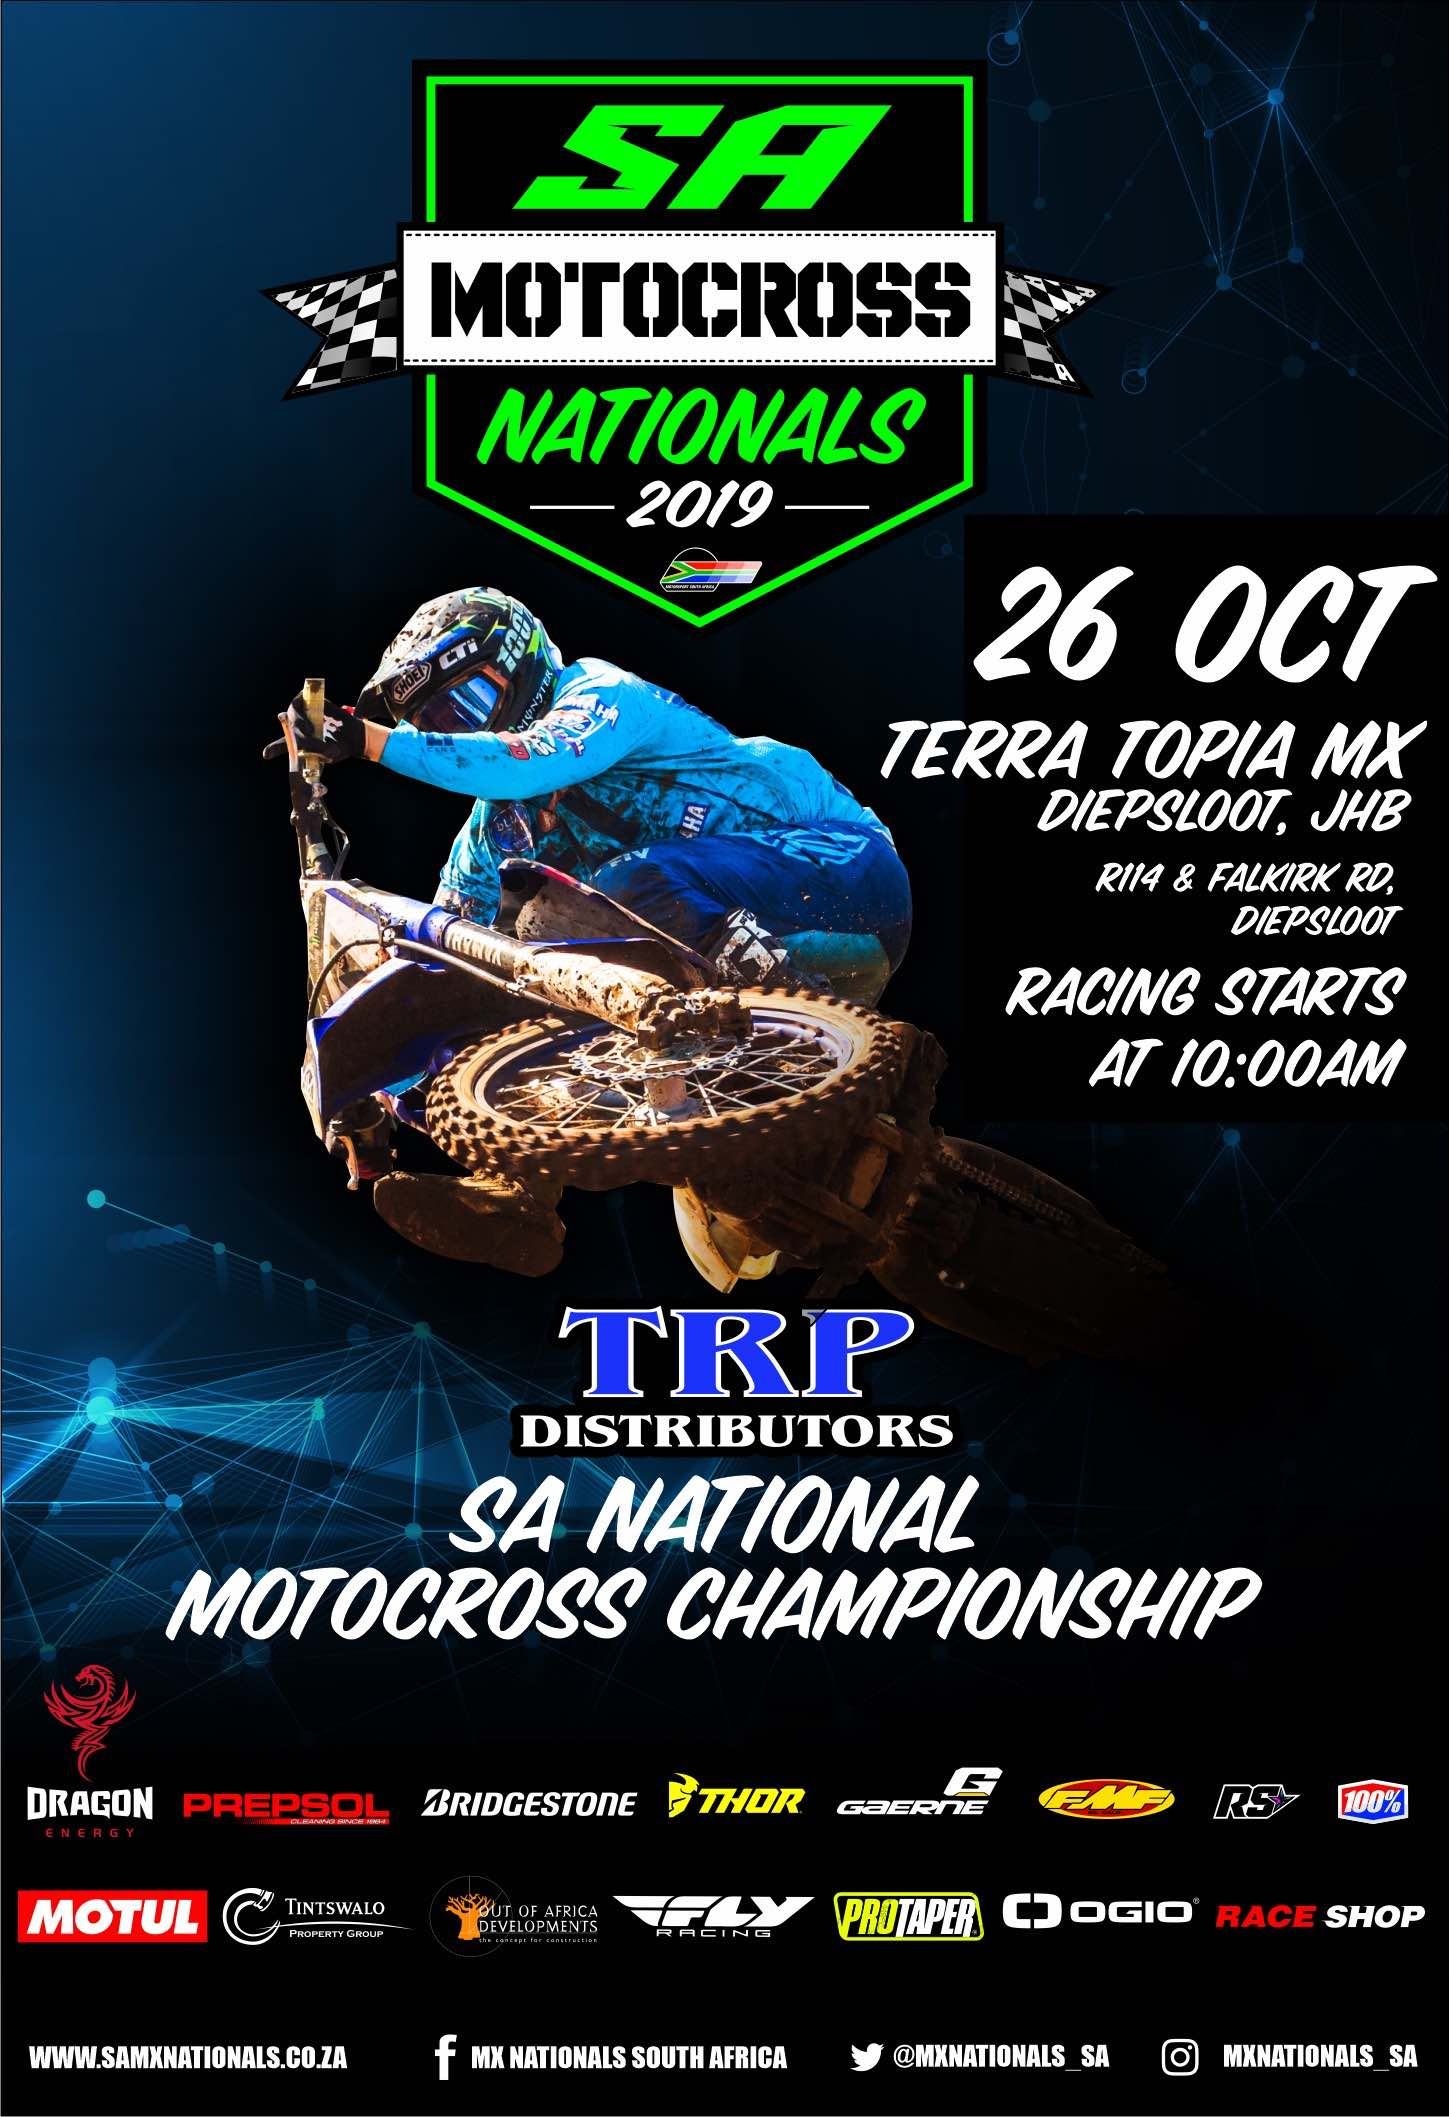 Details for the final round of the 2019 TRP Distributors South African National Motocross Championship taking place at Terra Topia